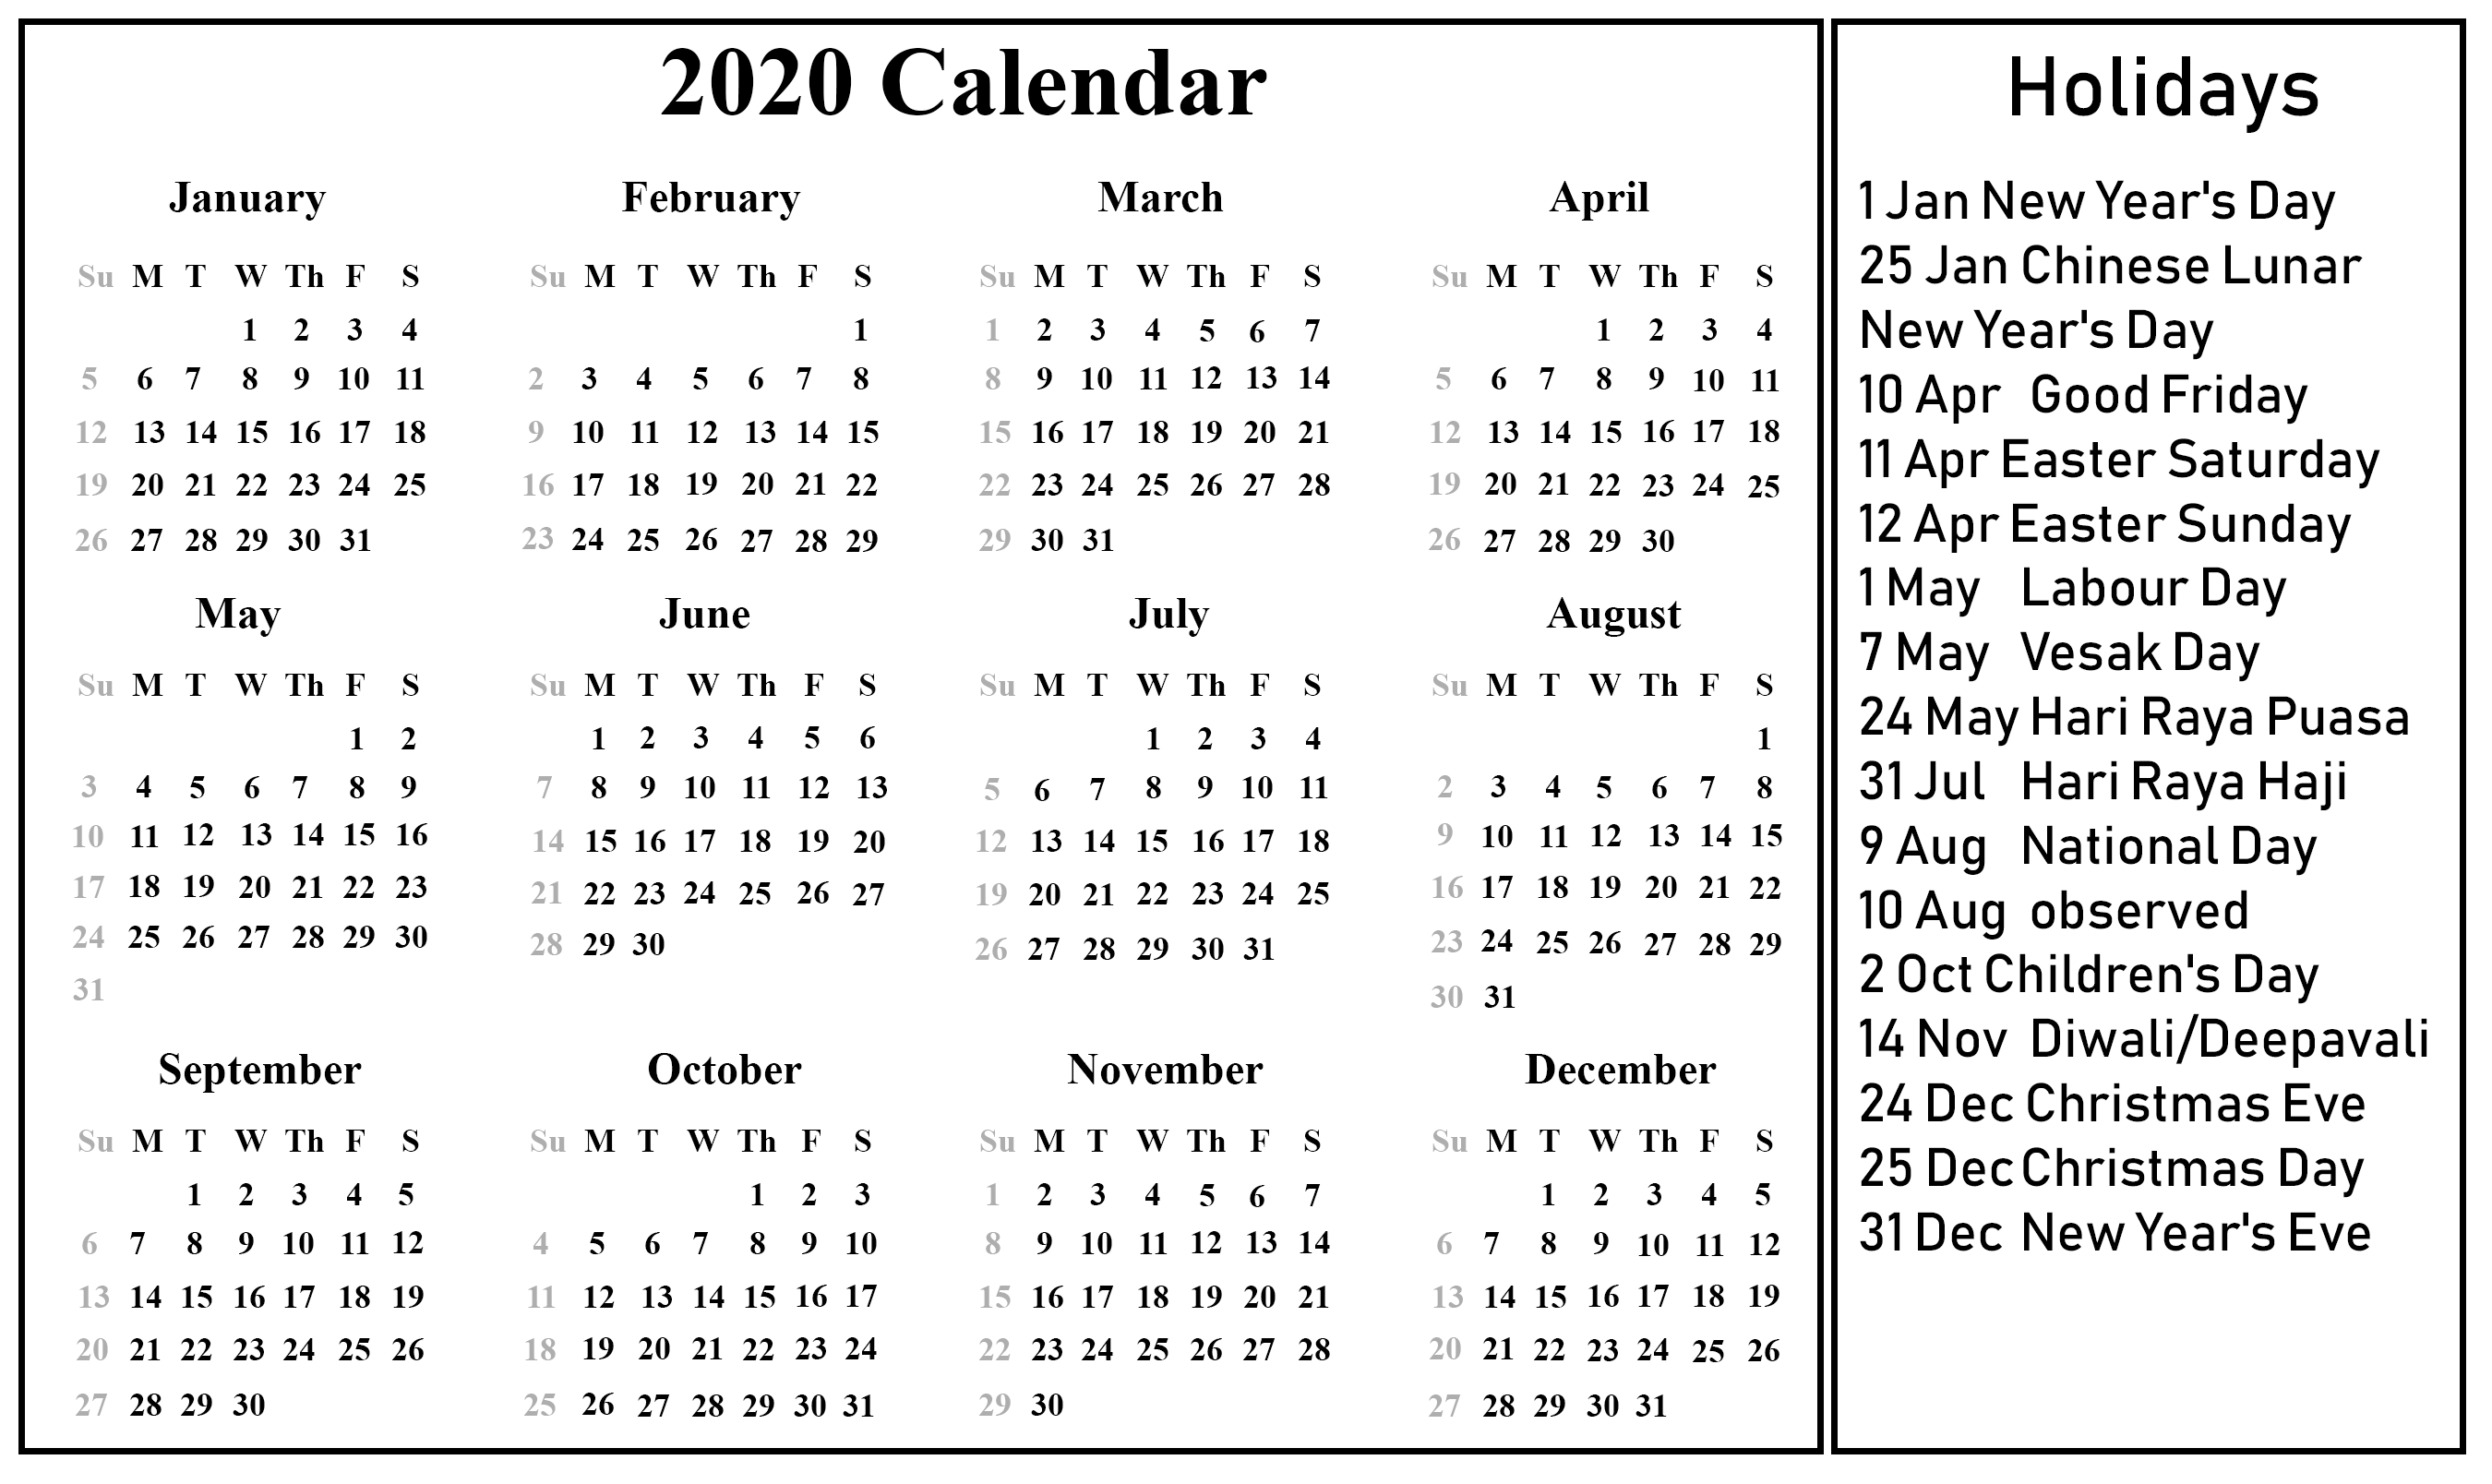 Free Printable 2020 Calendar One Page Template Holiday